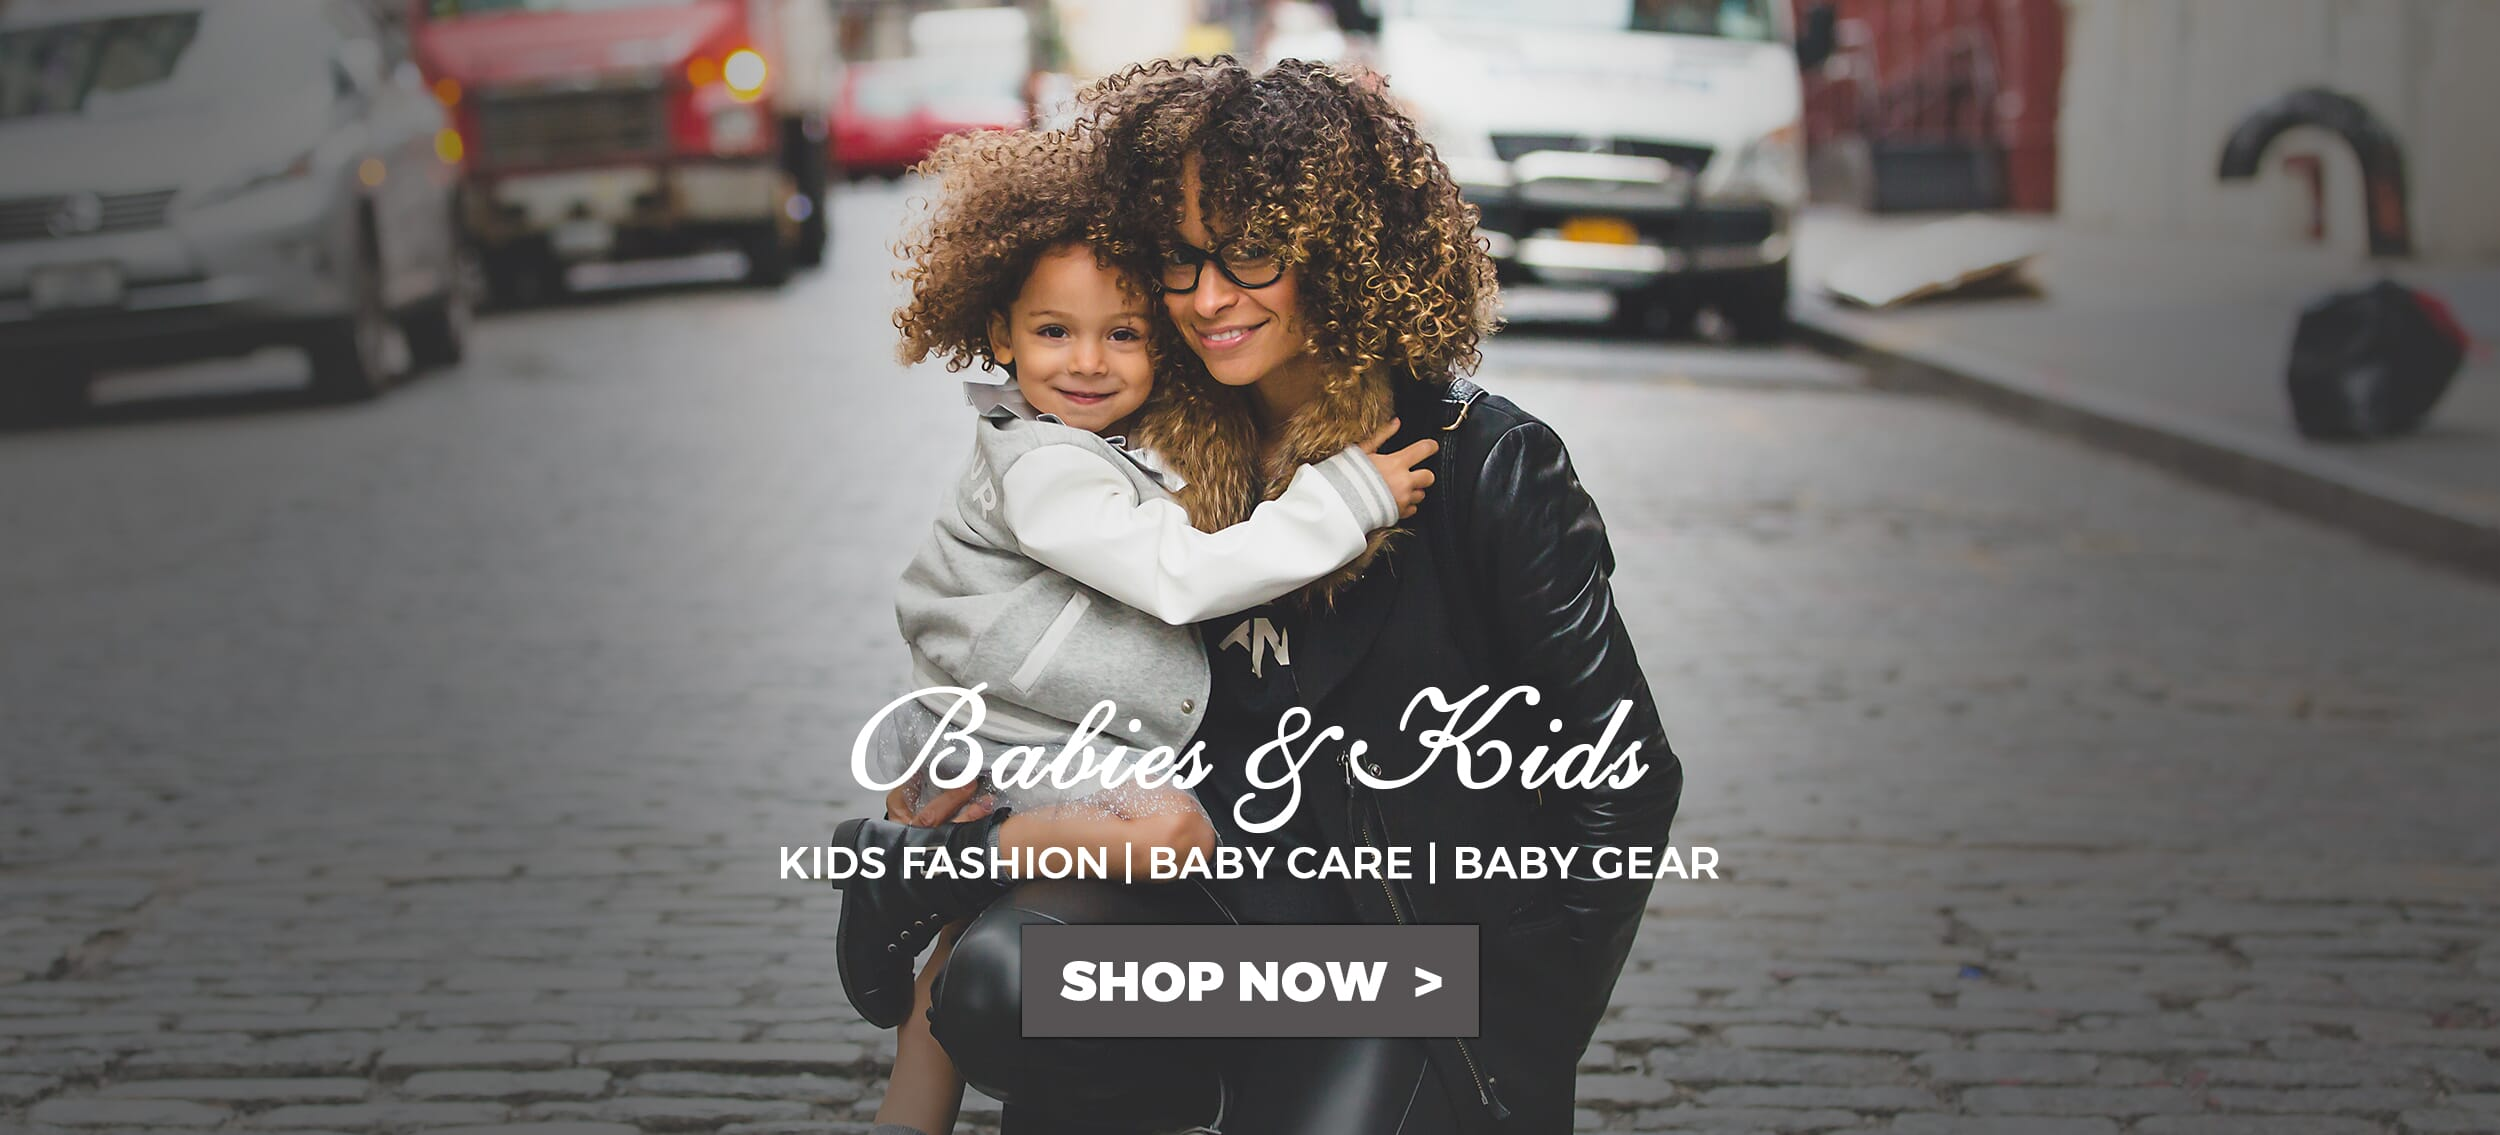 shop kids fashion